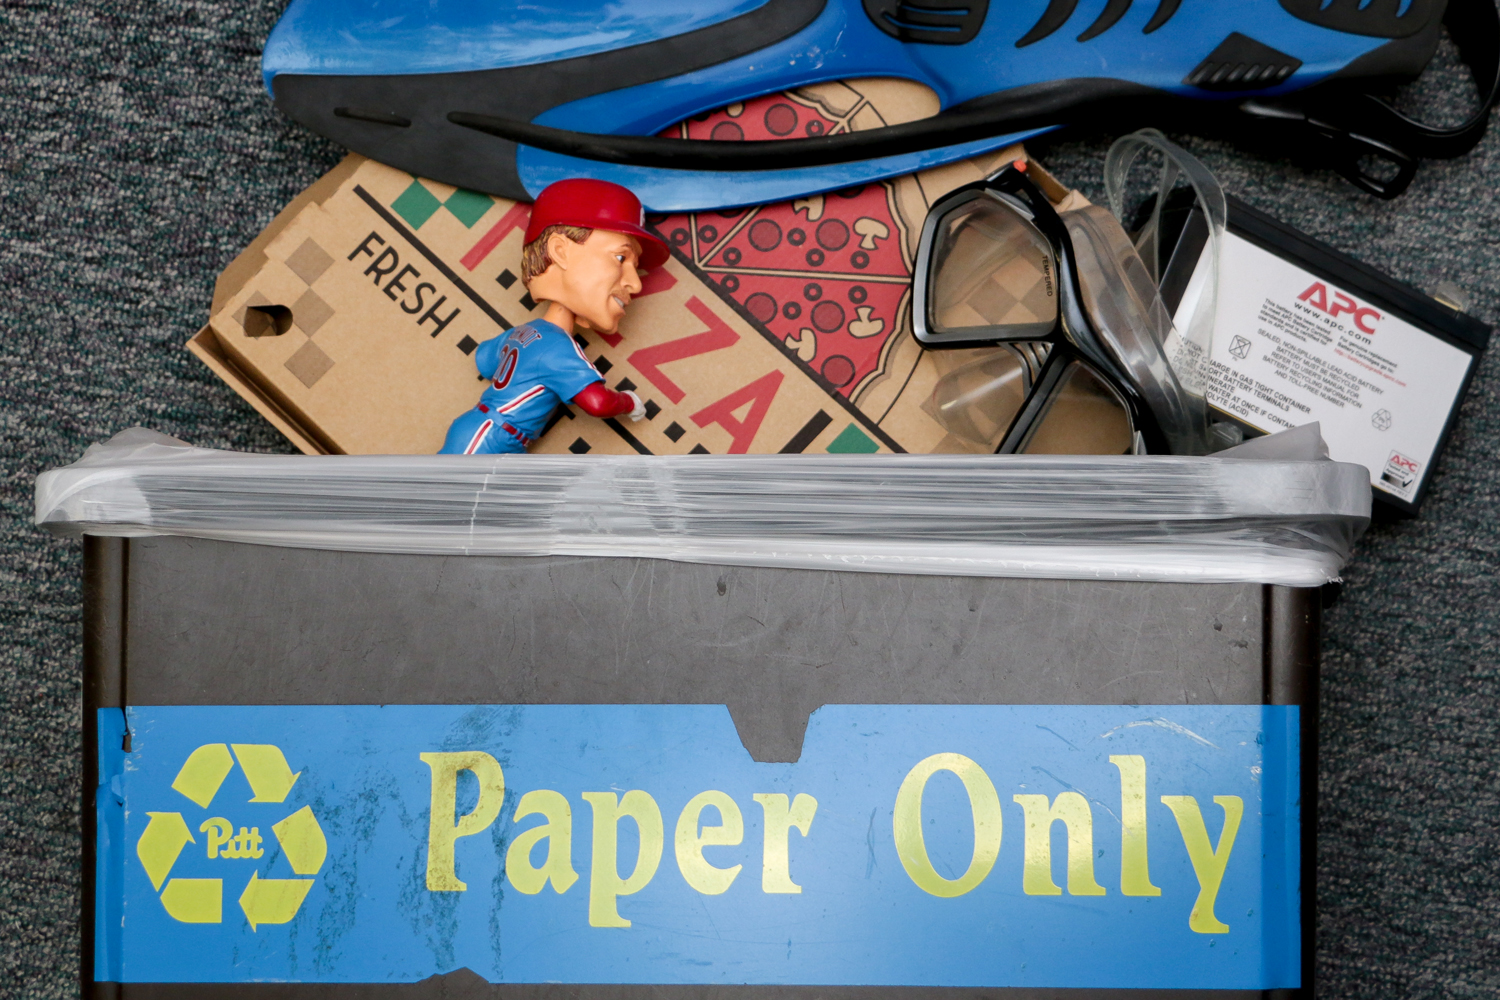 About 25 percent of all recycling picked up by waste management is sent straight to the landfill due to contamination, according to a study by The New York Times.